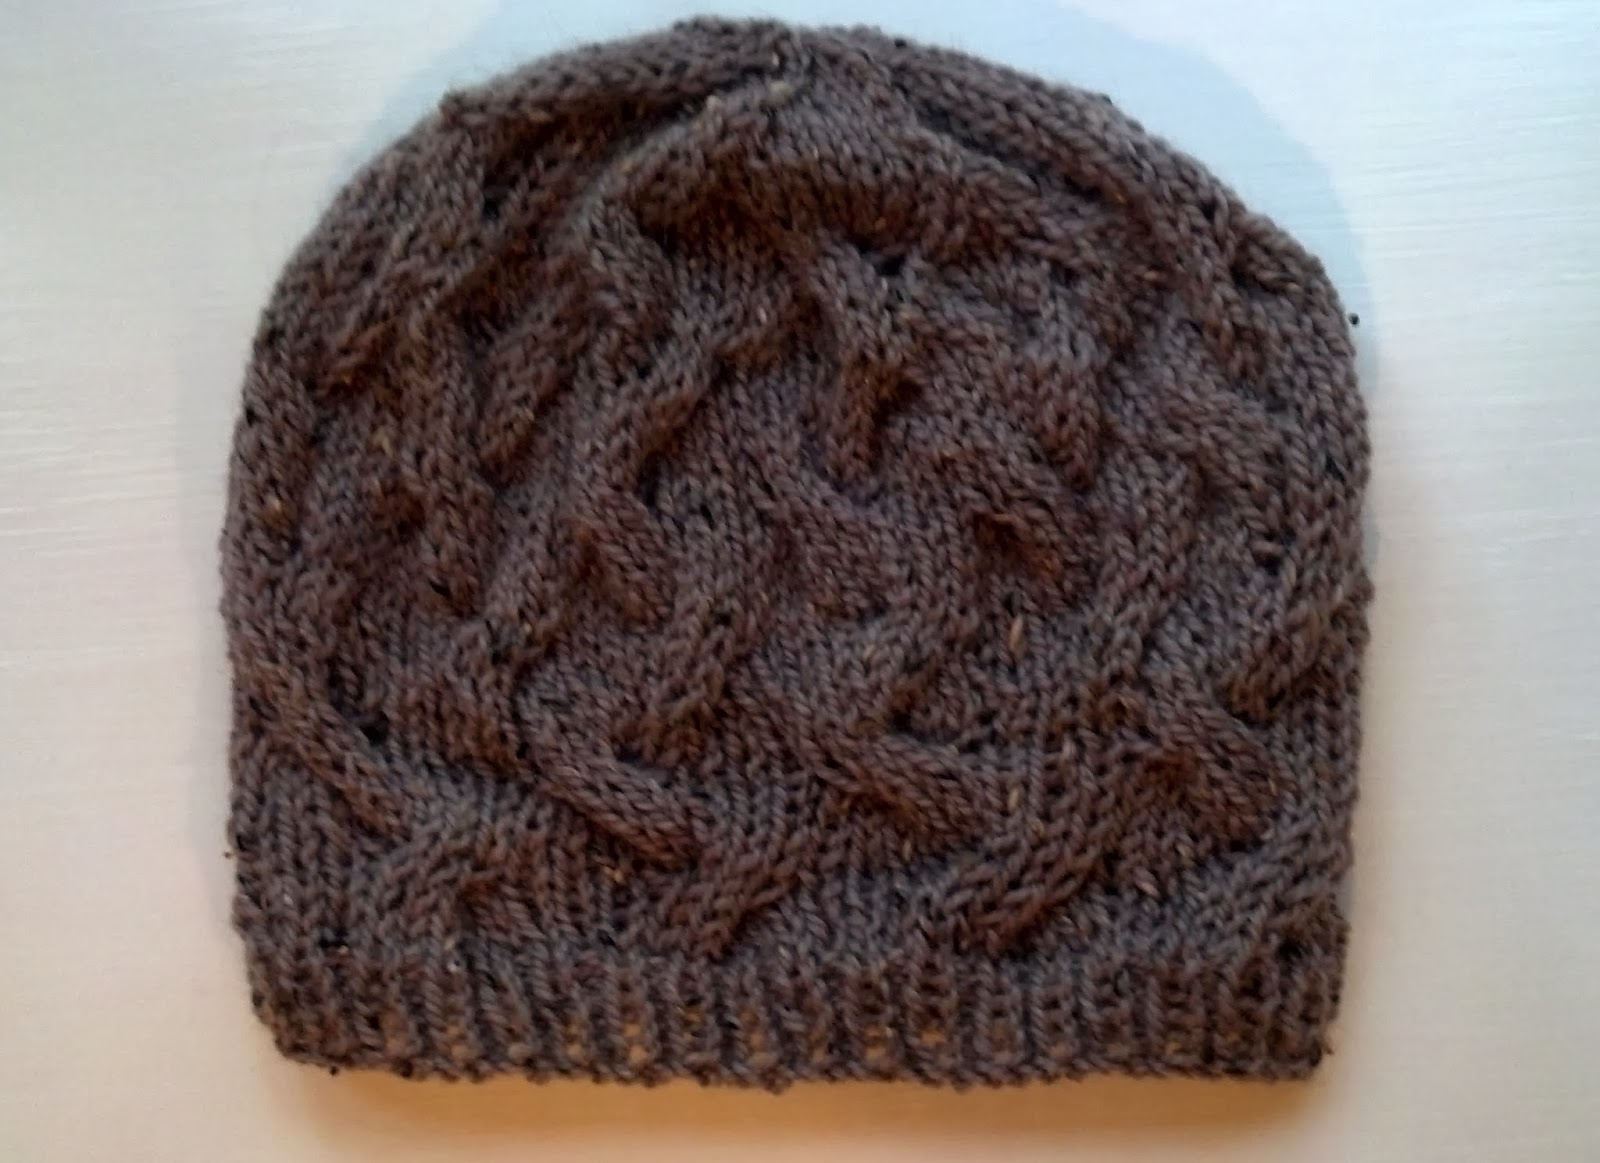 40ba1aec669ba This is one of my favorite hats to make and it comes out looking  differently depending upon the yarn thickness you use. If you use a worsted  weight yarn